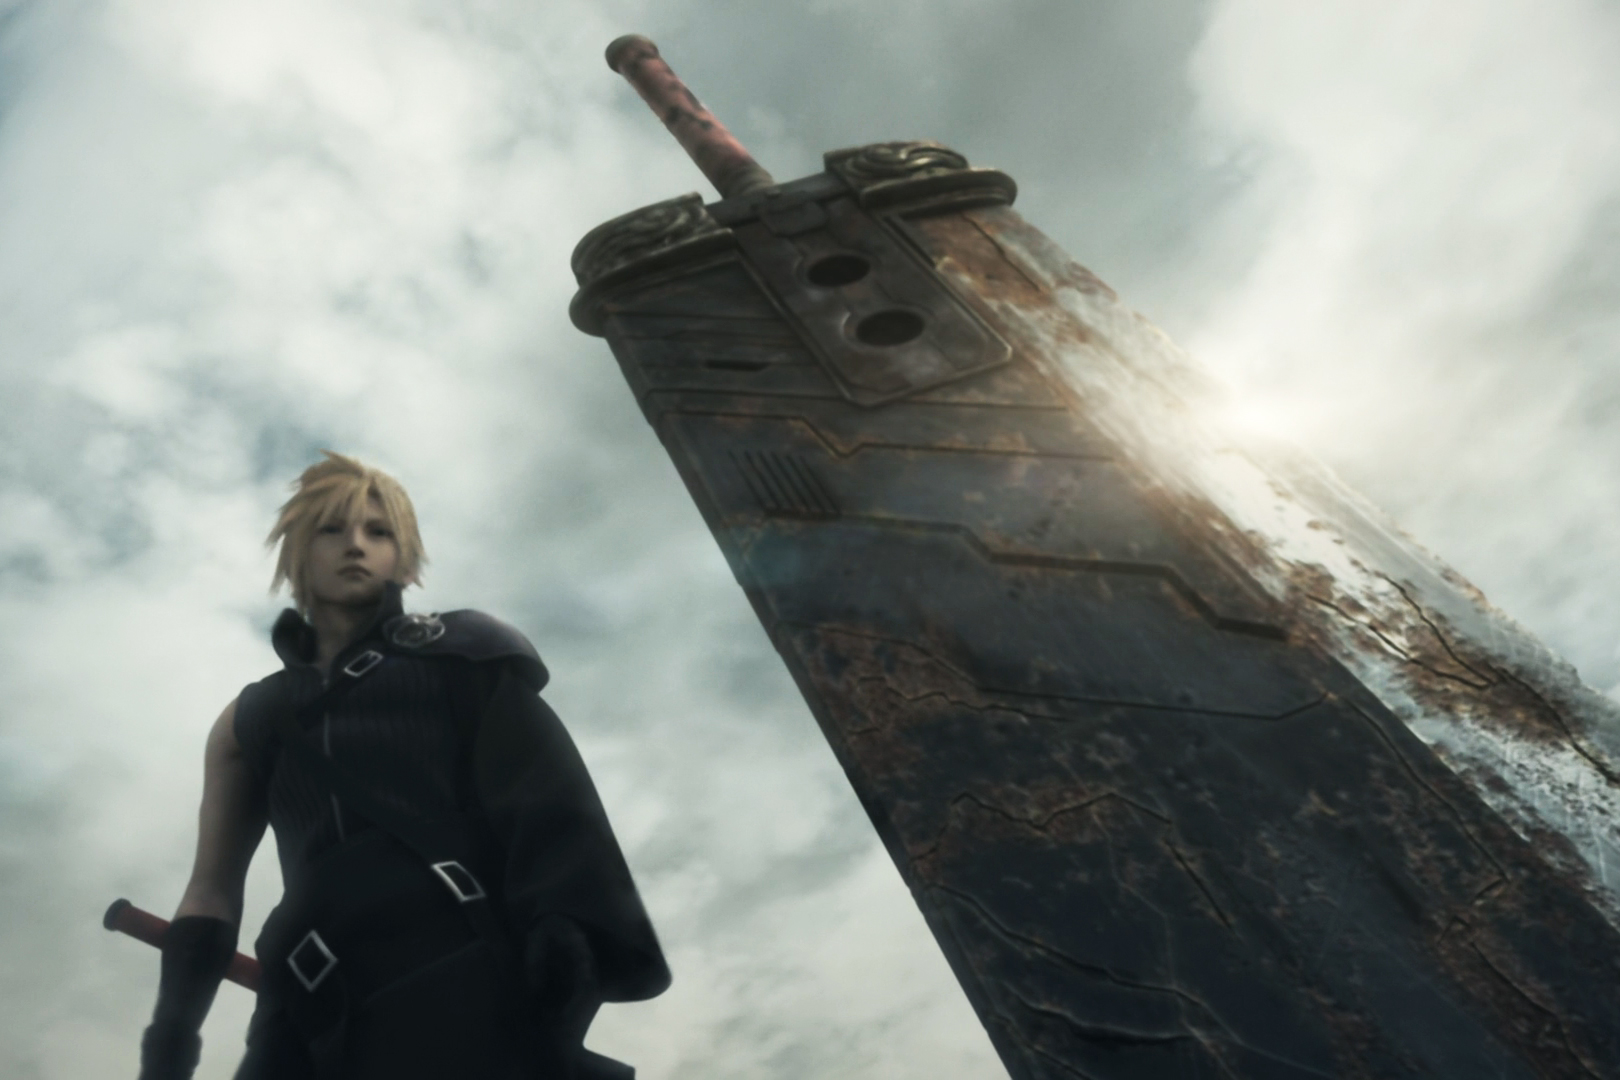 Final Fantasy VII Remake Announced At E3 Gamers Conference HYPEBEAST 1620x1080